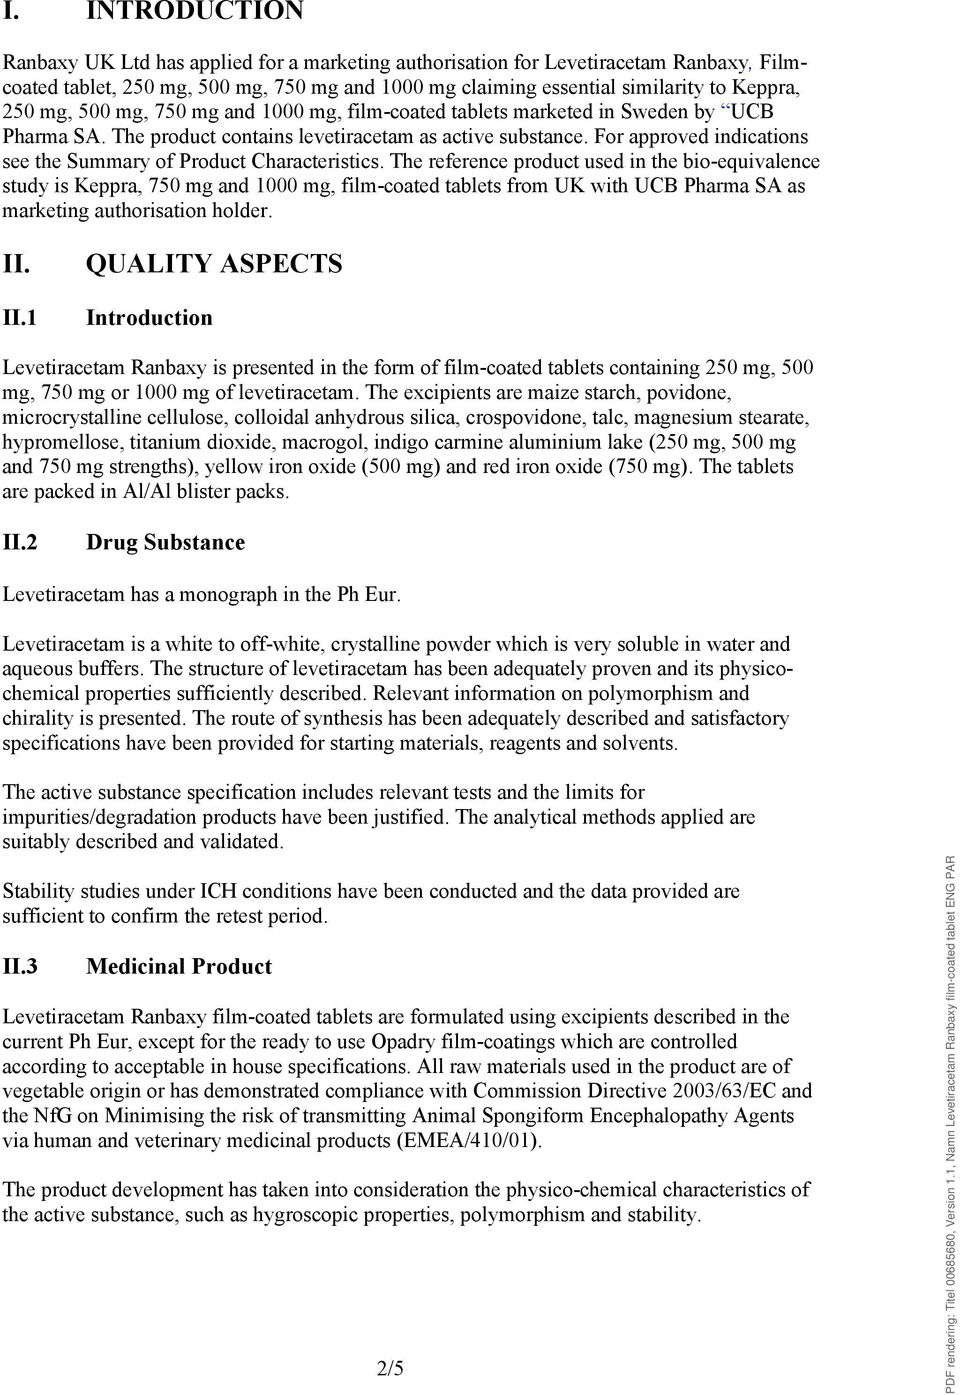 For approved indications see the Summary of Product Characteristics.